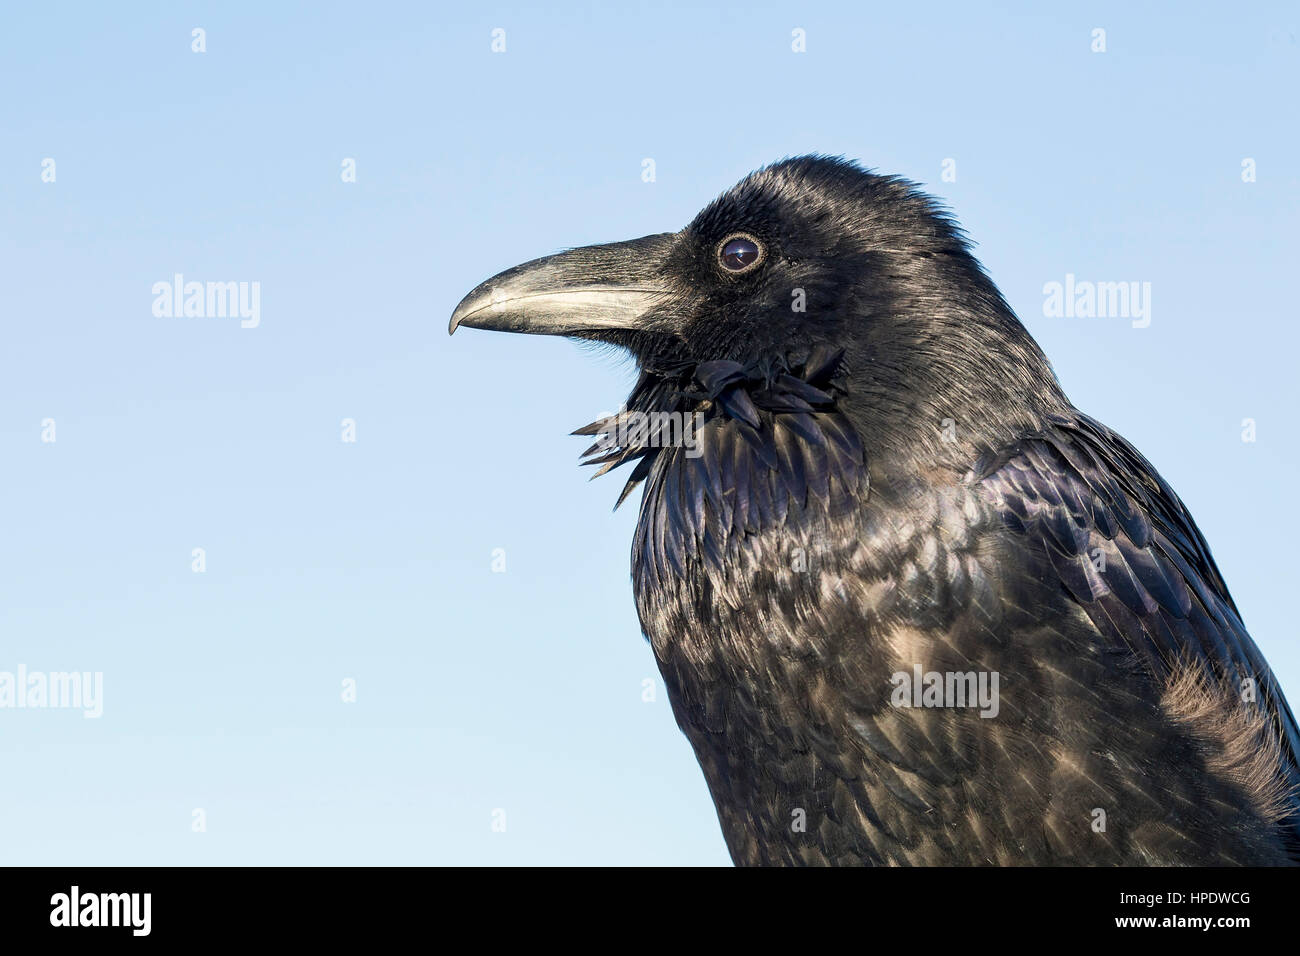 An extremely close portrait of a wild Common Raven (Corvus corax) on a sunny day. - Stock Image